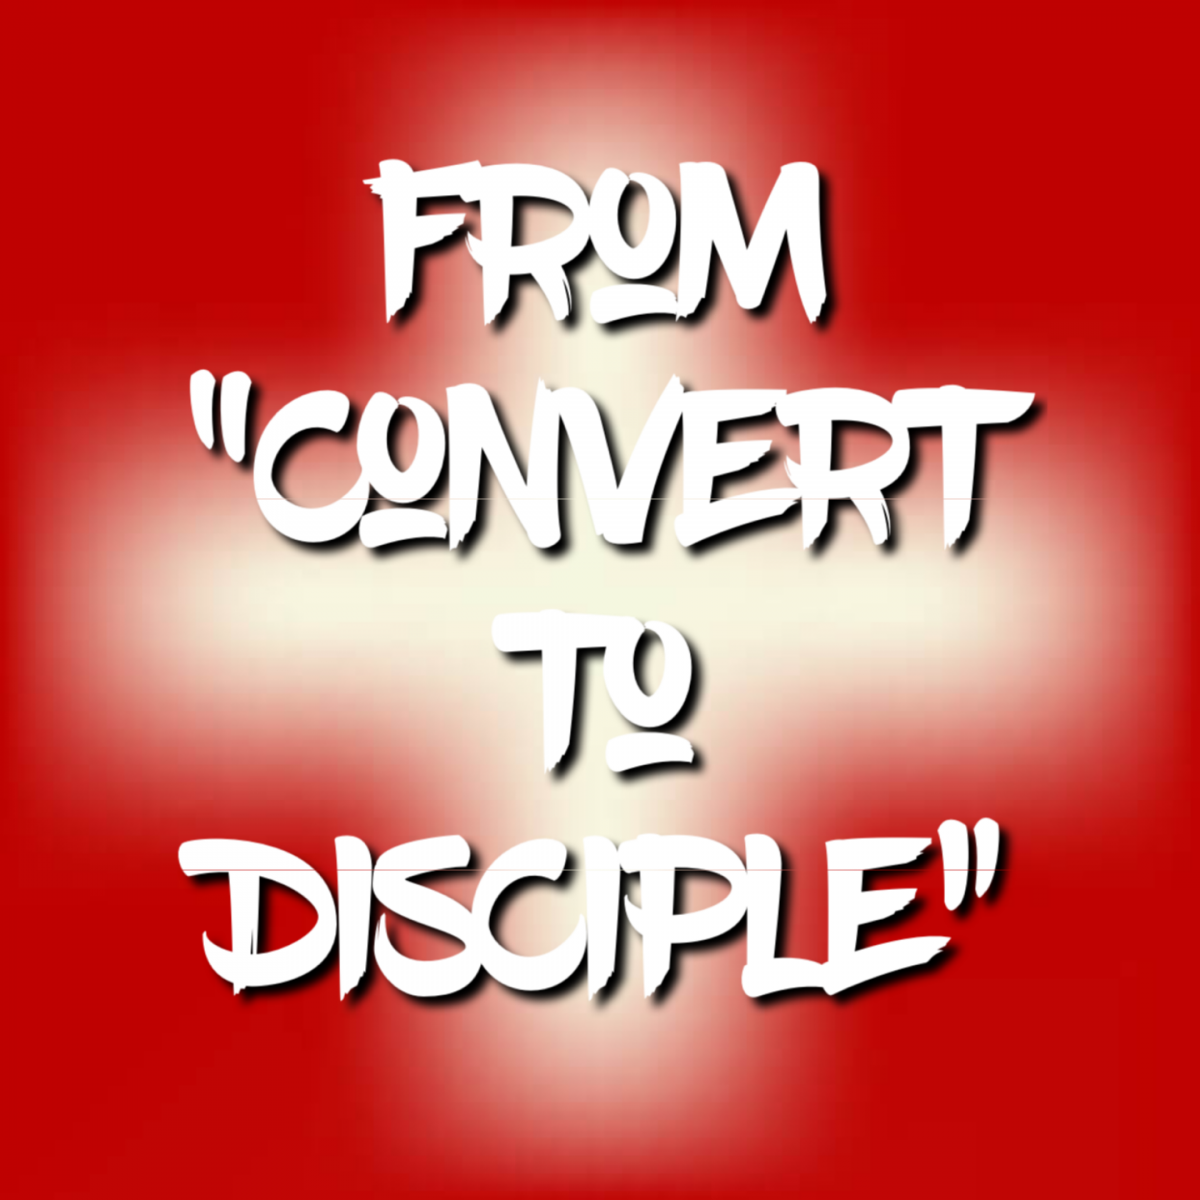 From Convert to Disciple